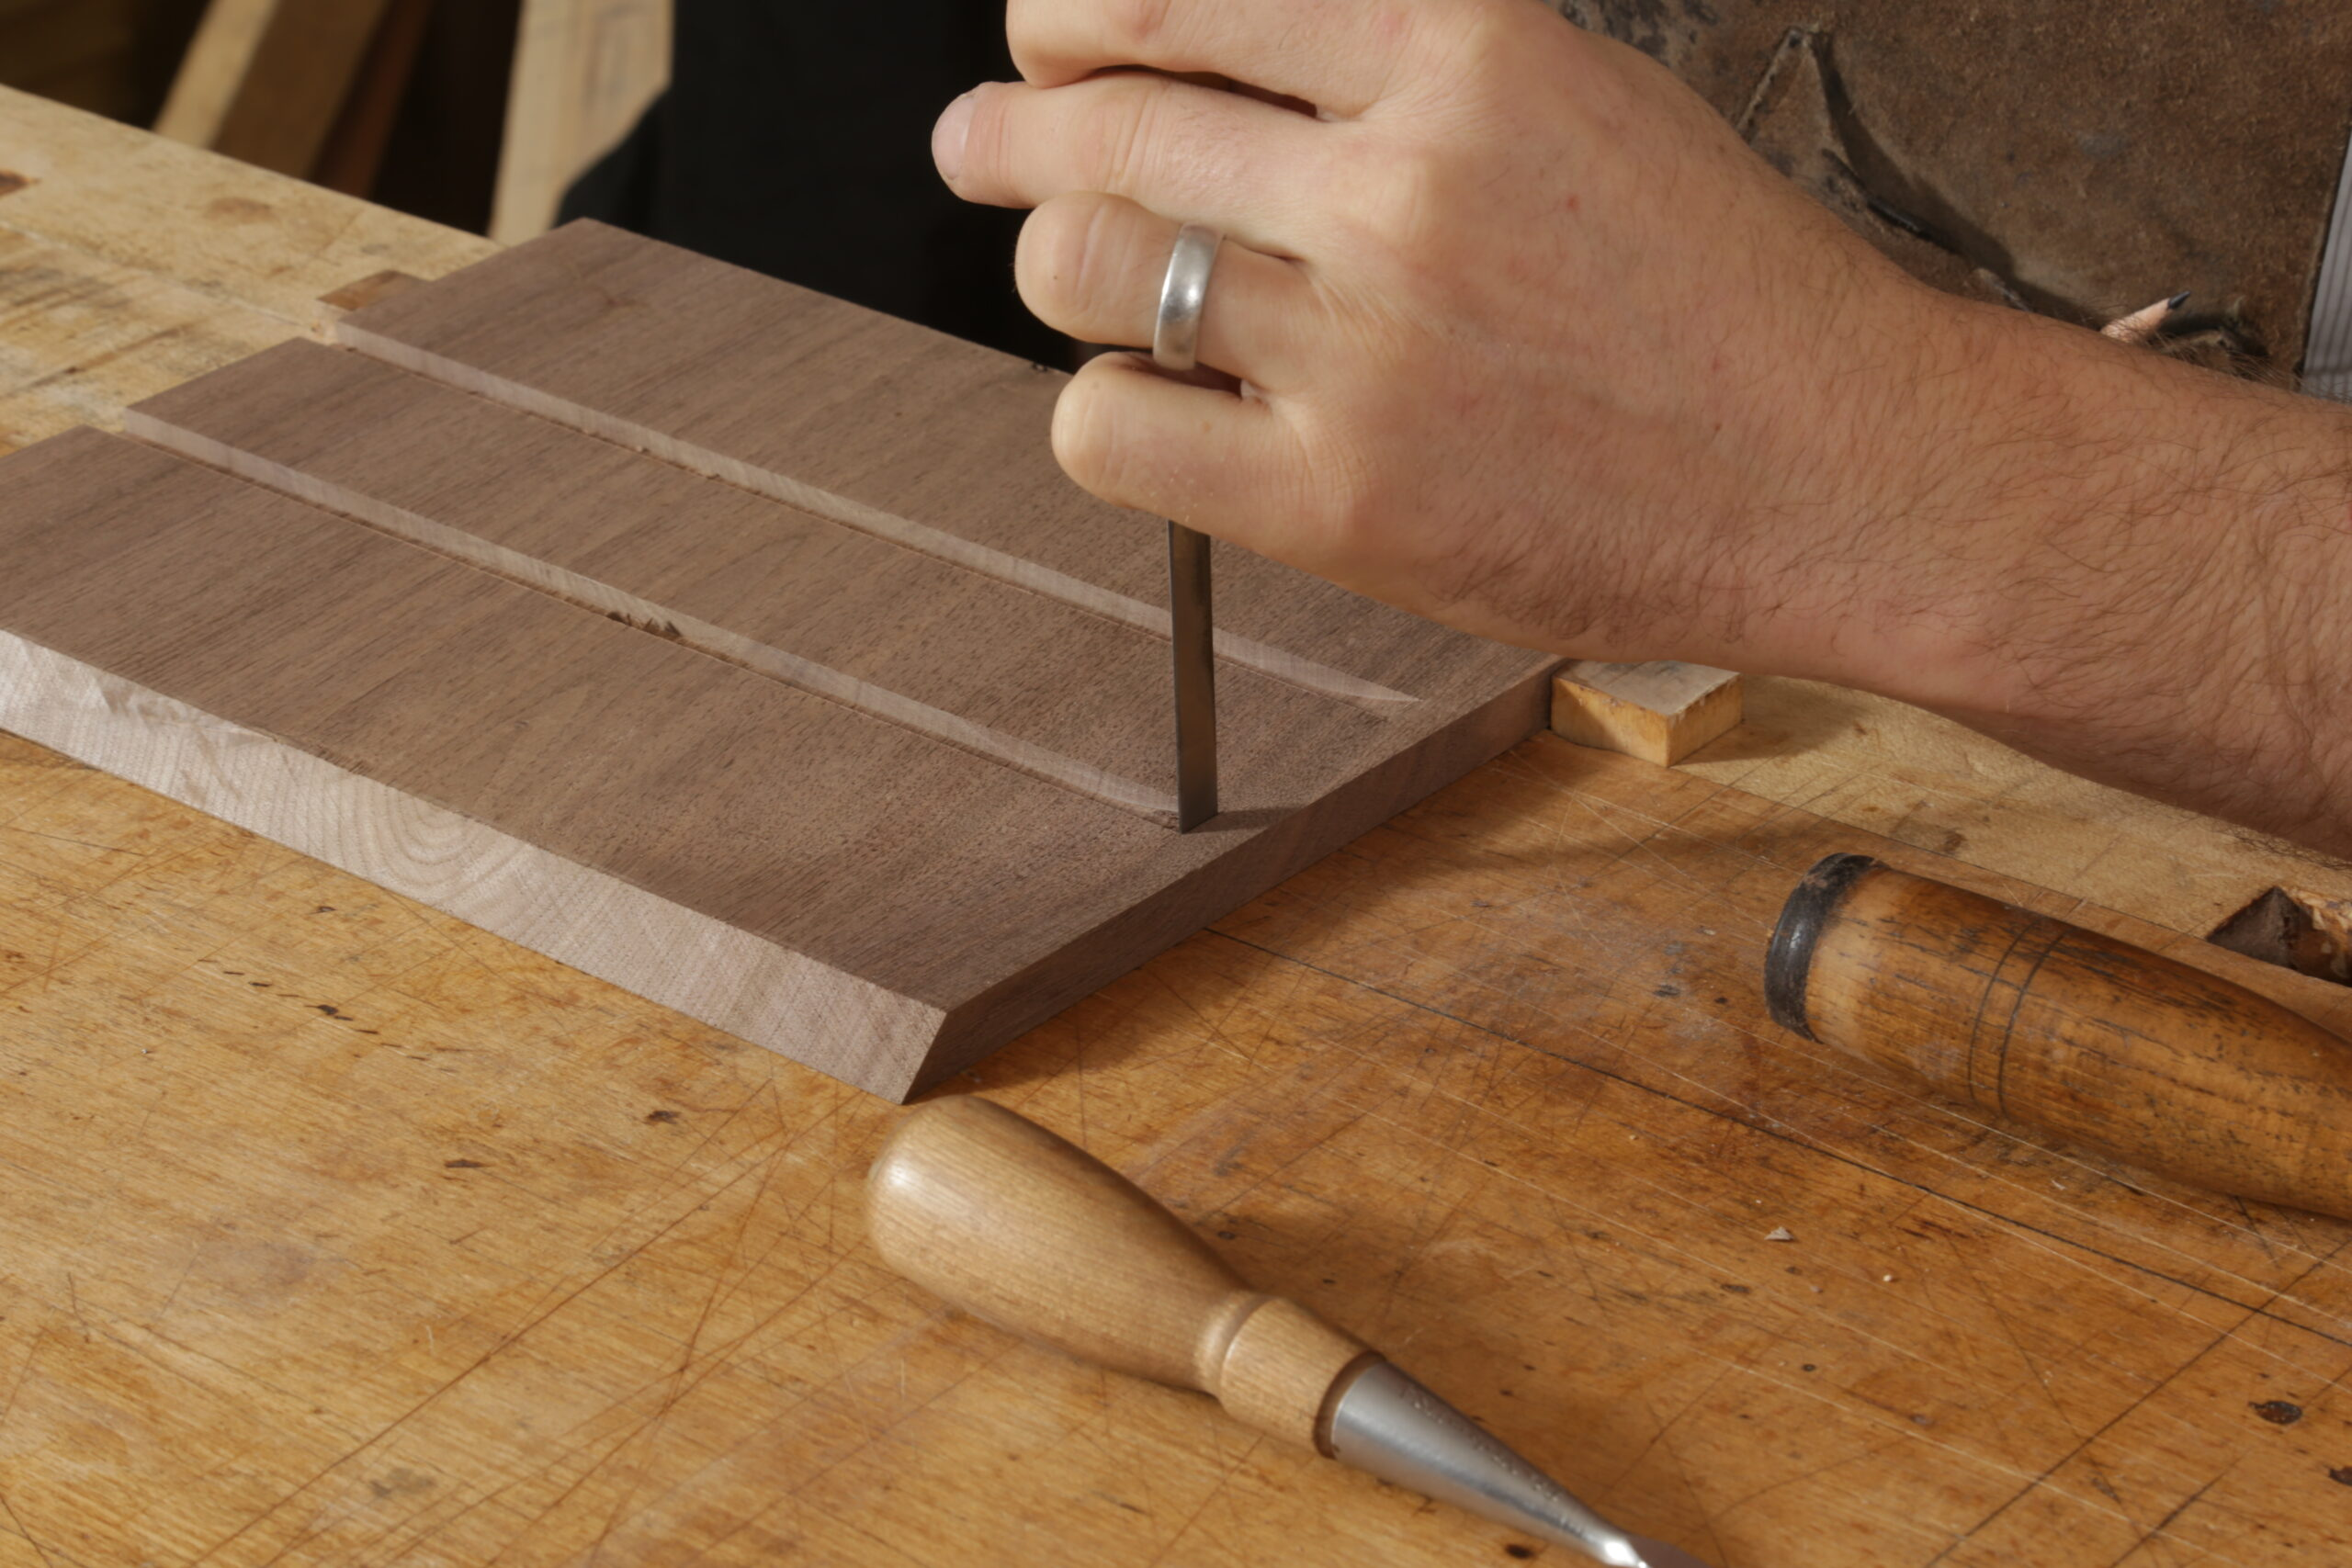 The author using a chisel to square up a dado. He is holding one chisel in his hand, and the handles of two others are in shot. There are two dadoes on the inside of the box side.